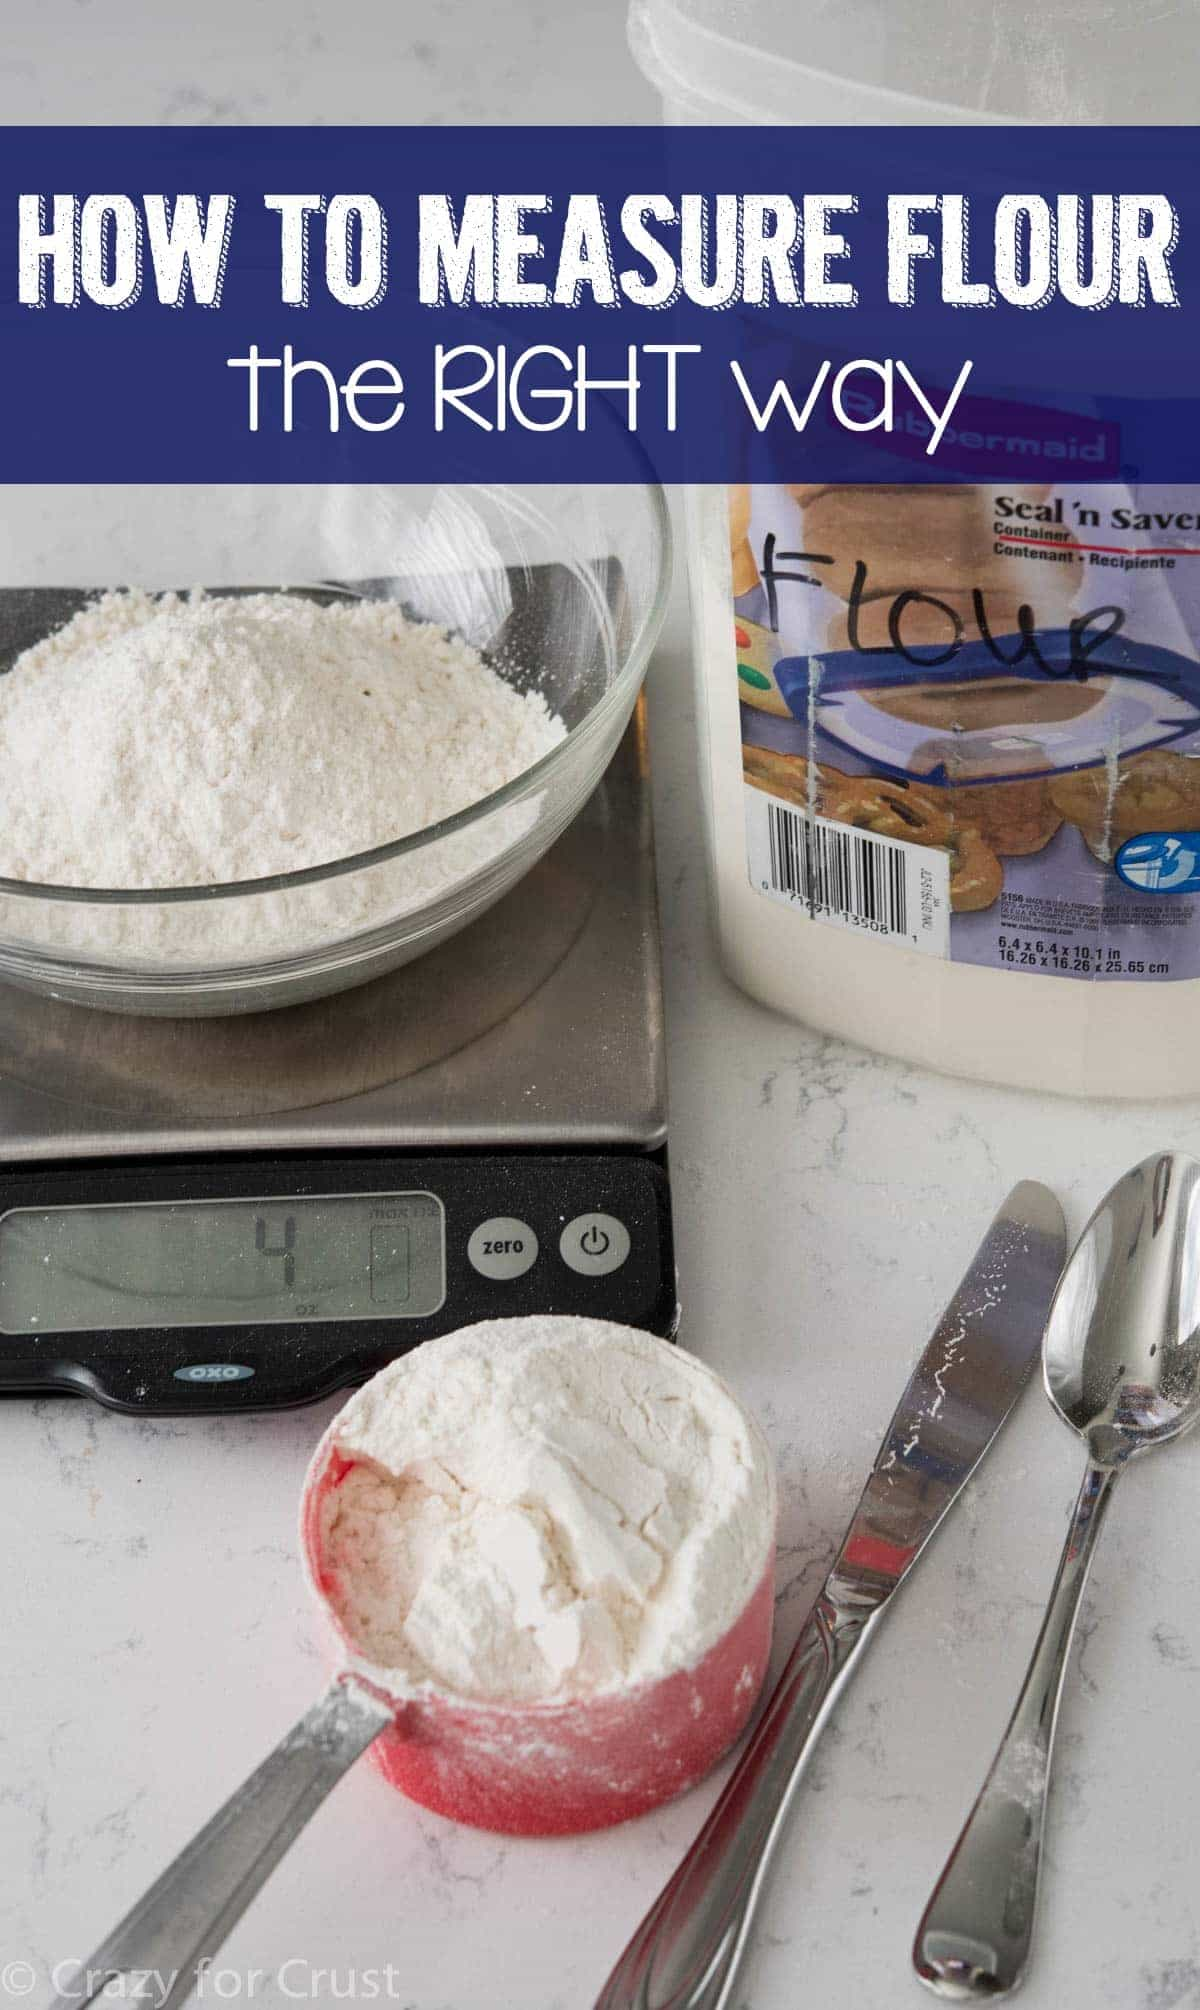 How to measure flour for perfect recipes every time. The secret: SPOON don't SCOOP!